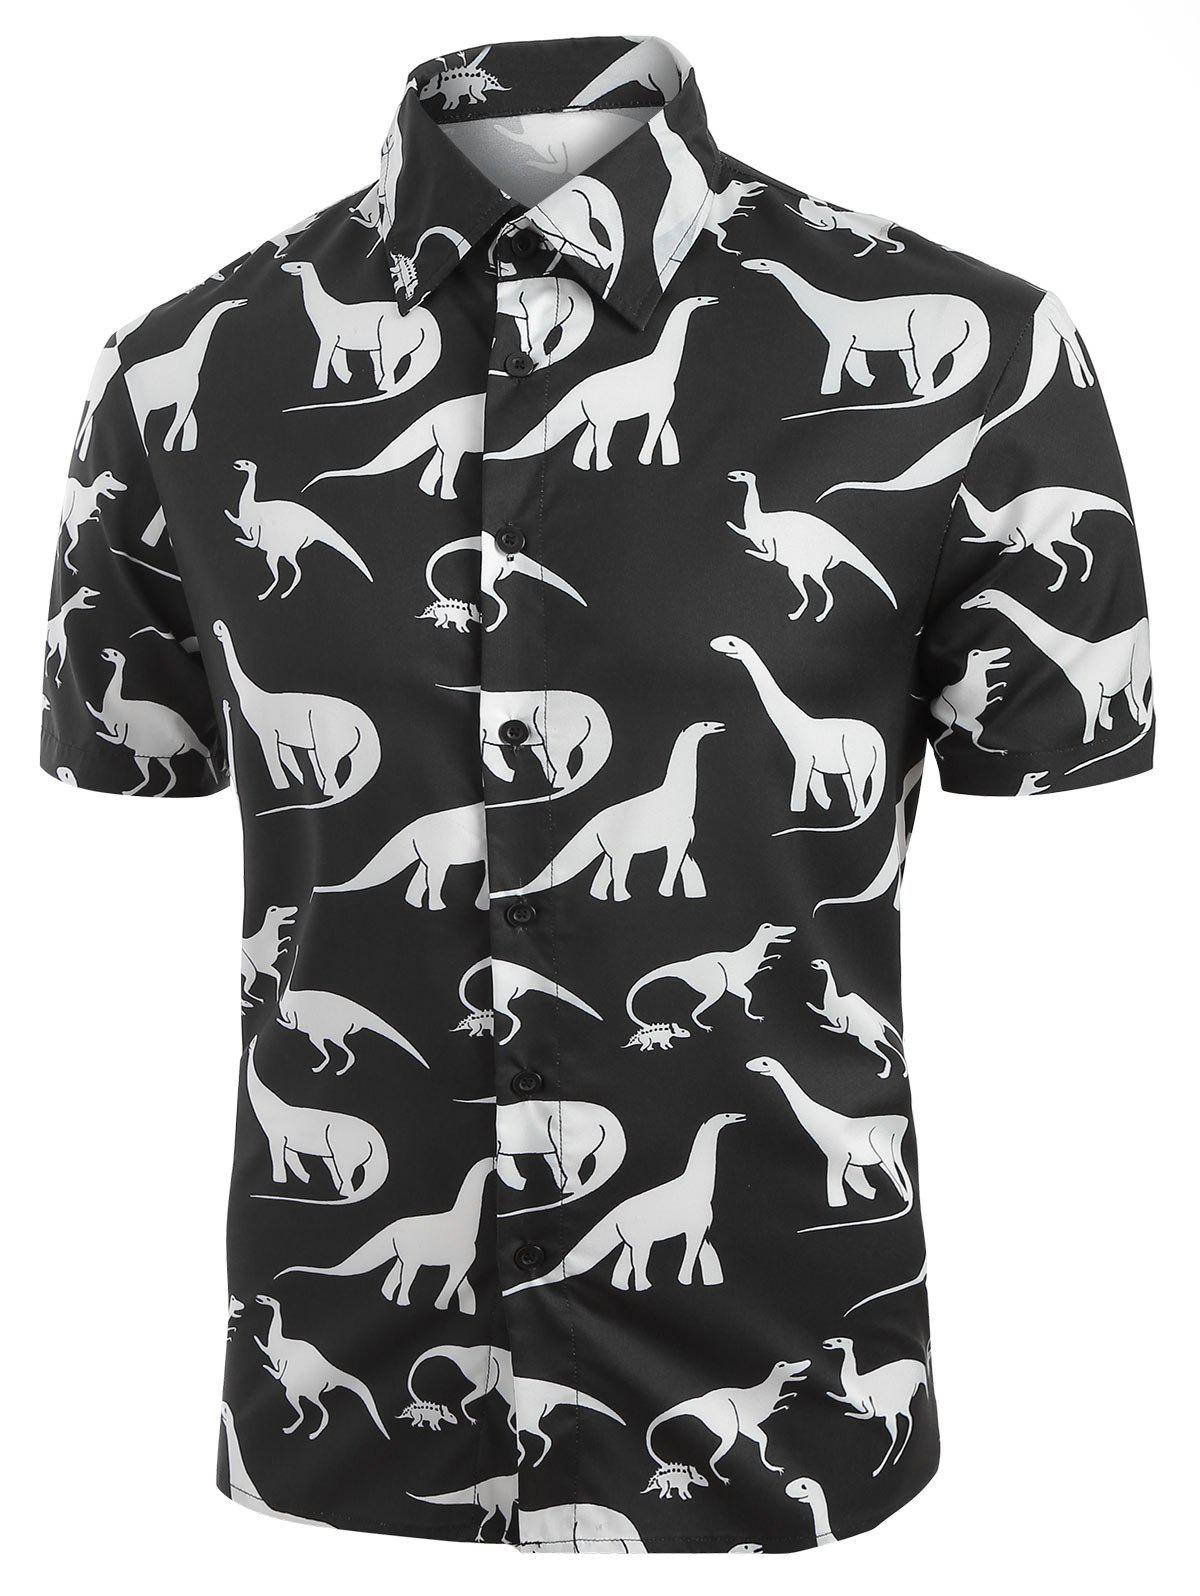 Hot Dinosaur Pattern Casual Short Sleeves Shirt